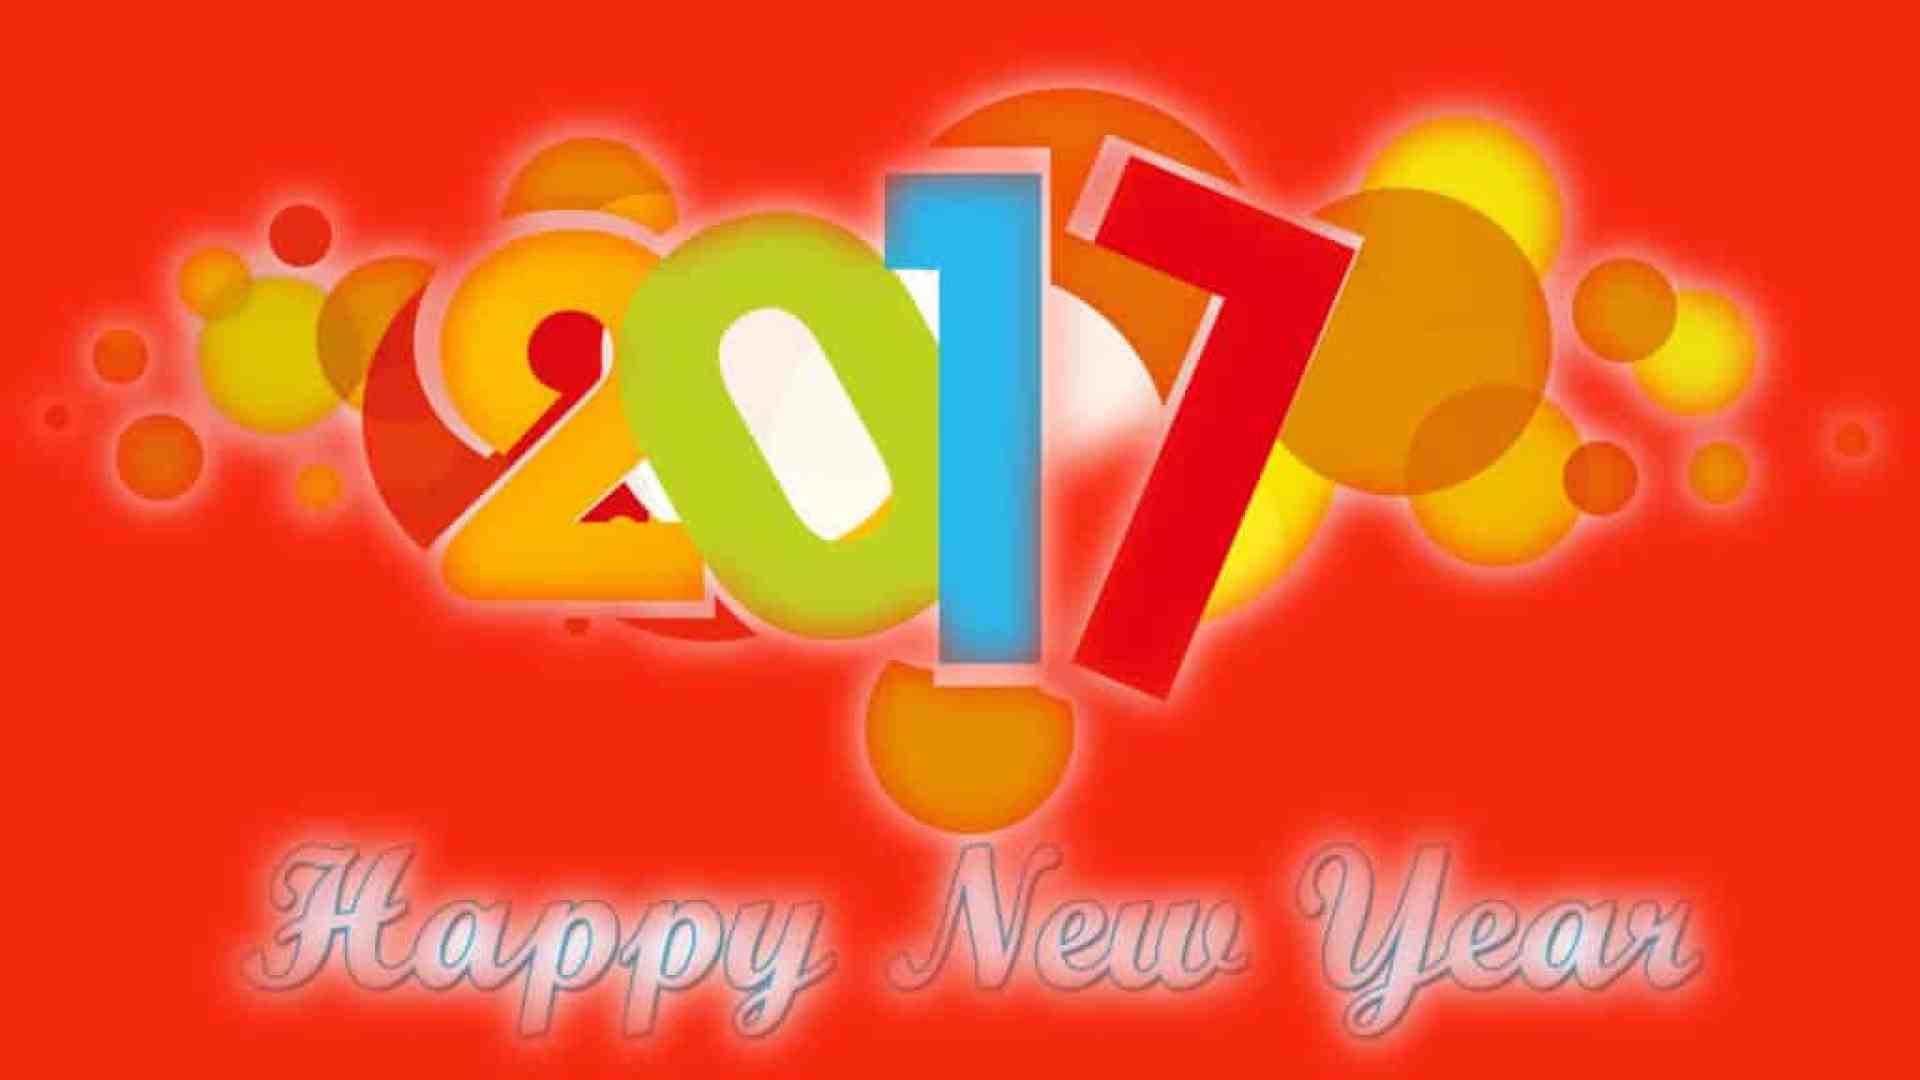 Happy New Year 2017 with orange background